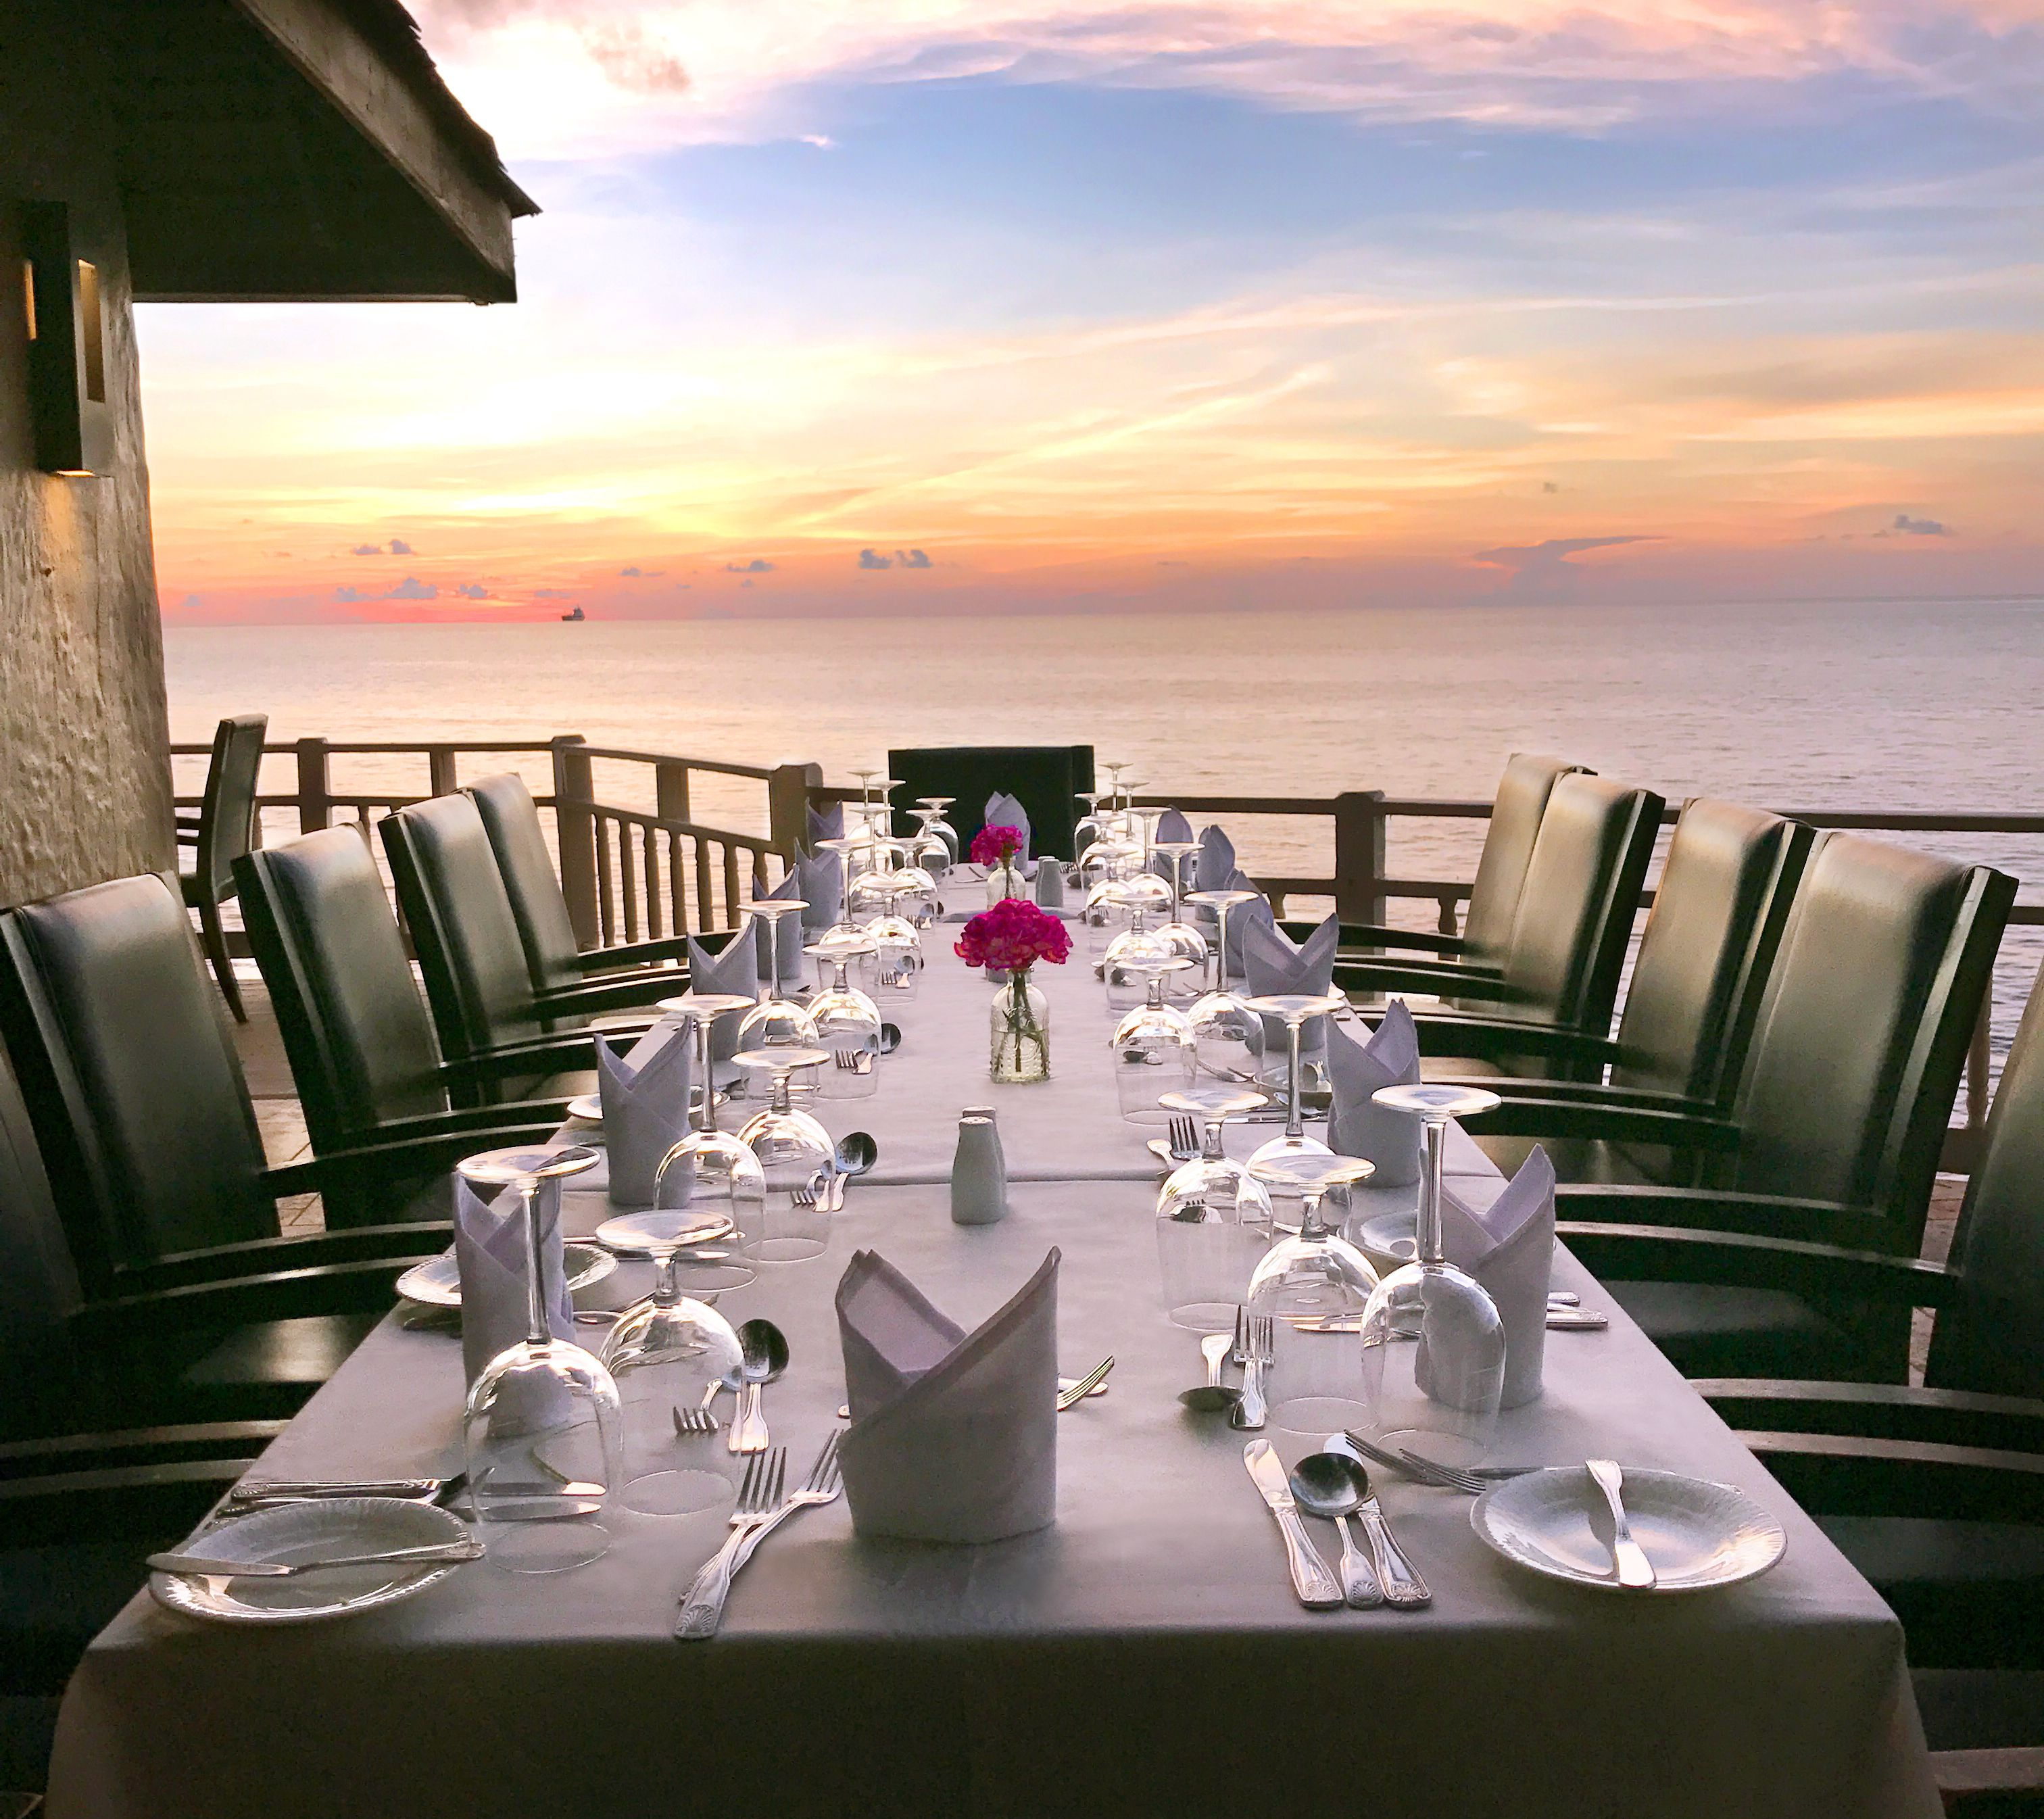 Patio restaurant table with white table cloth